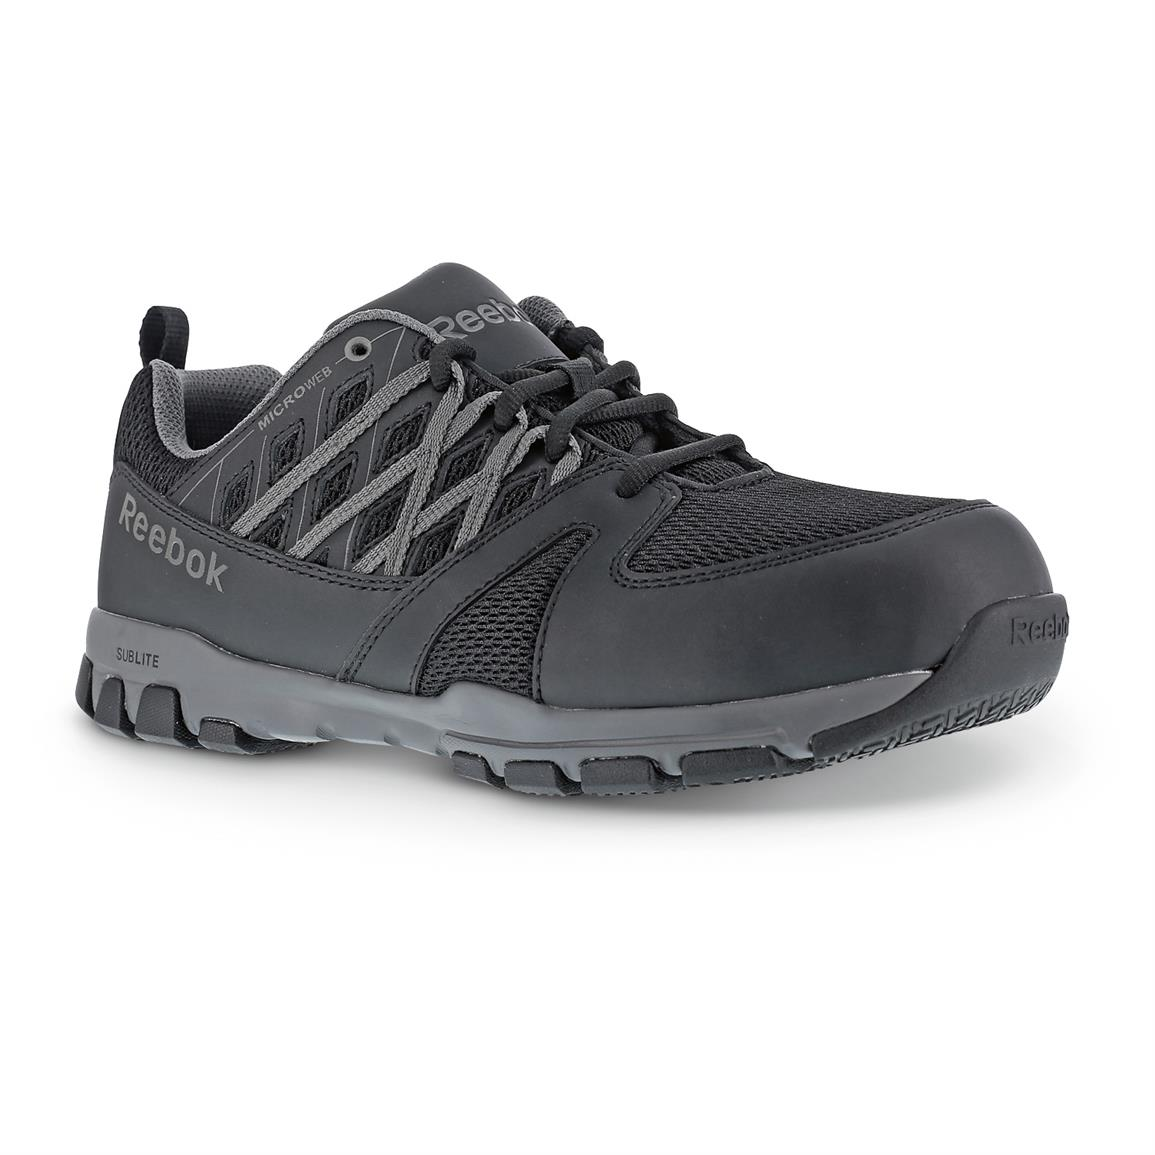 Men's Reebok Sublite Work Shoes, Static Dissipating, Black / Gray